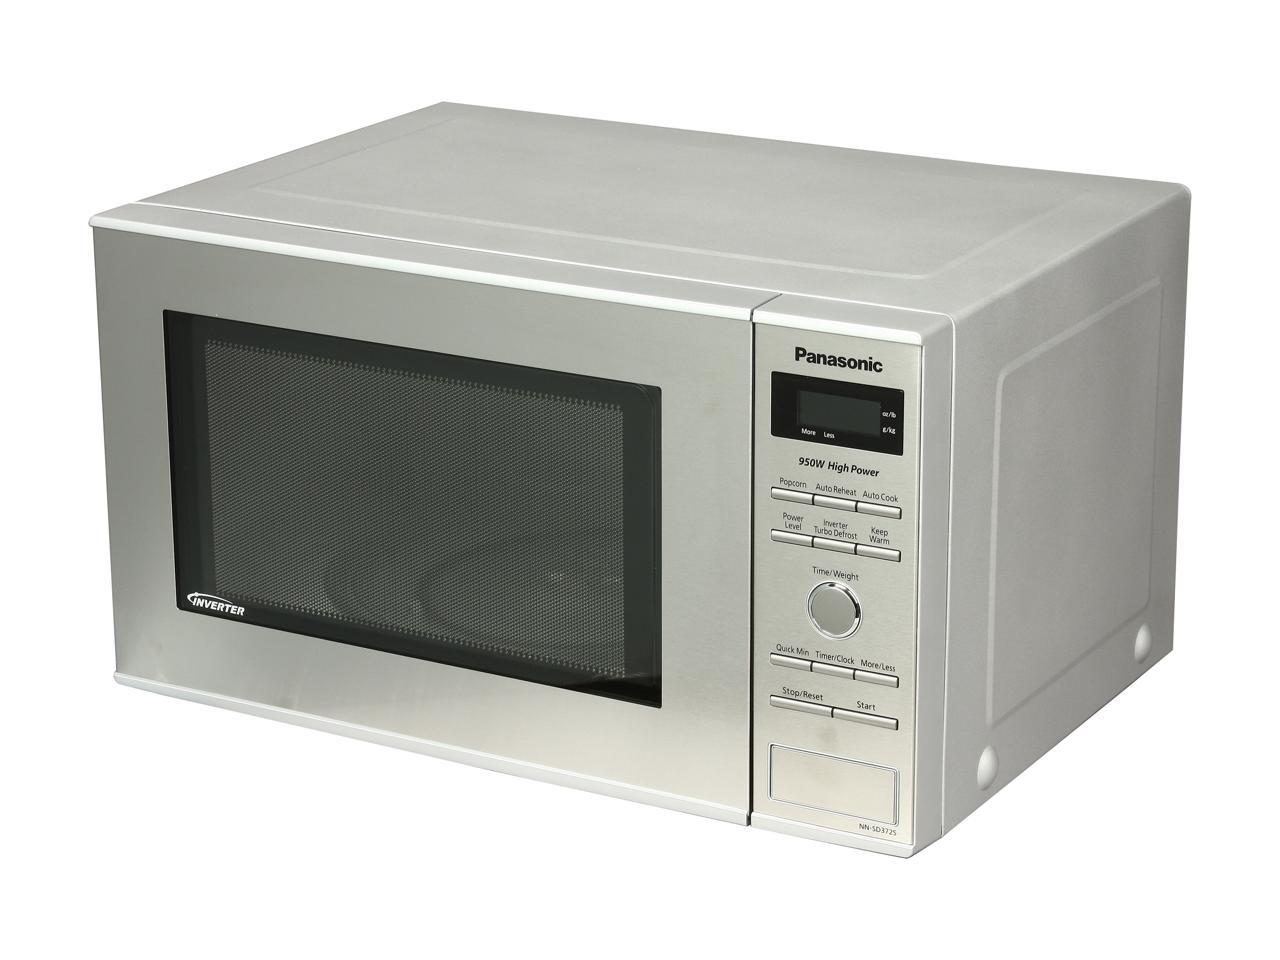 panasonic nn sd372s stainless 950w 0 8 cu ft stainless steel countertop microwave with inverter technology